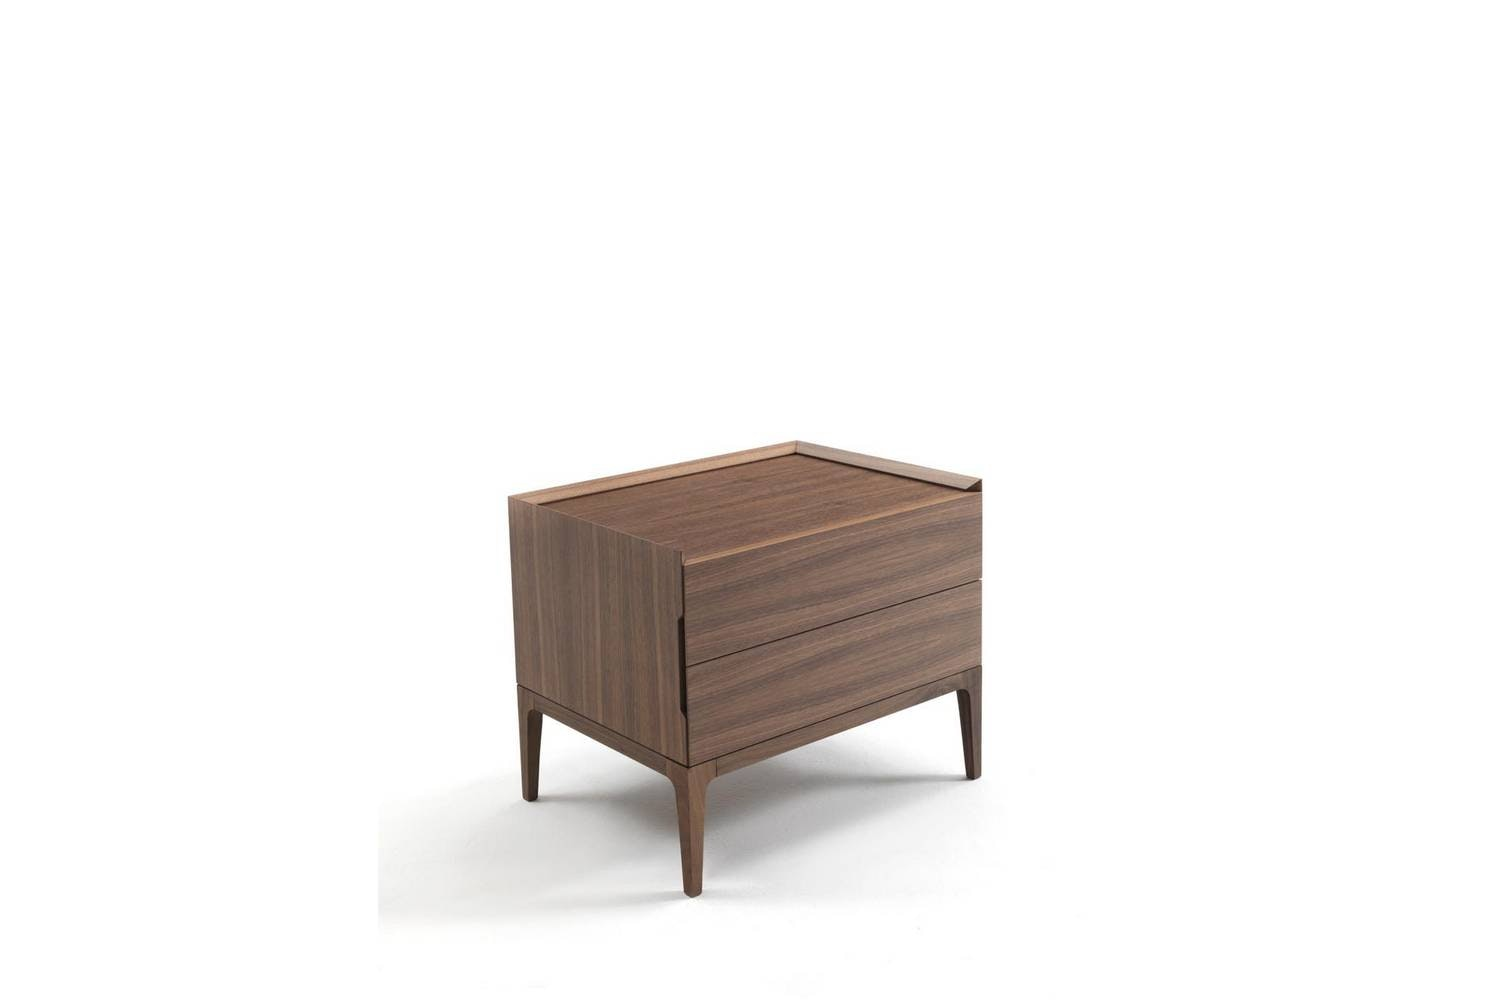 Oslo Bedside Table by M. Marconato - T. Zappa for Porada